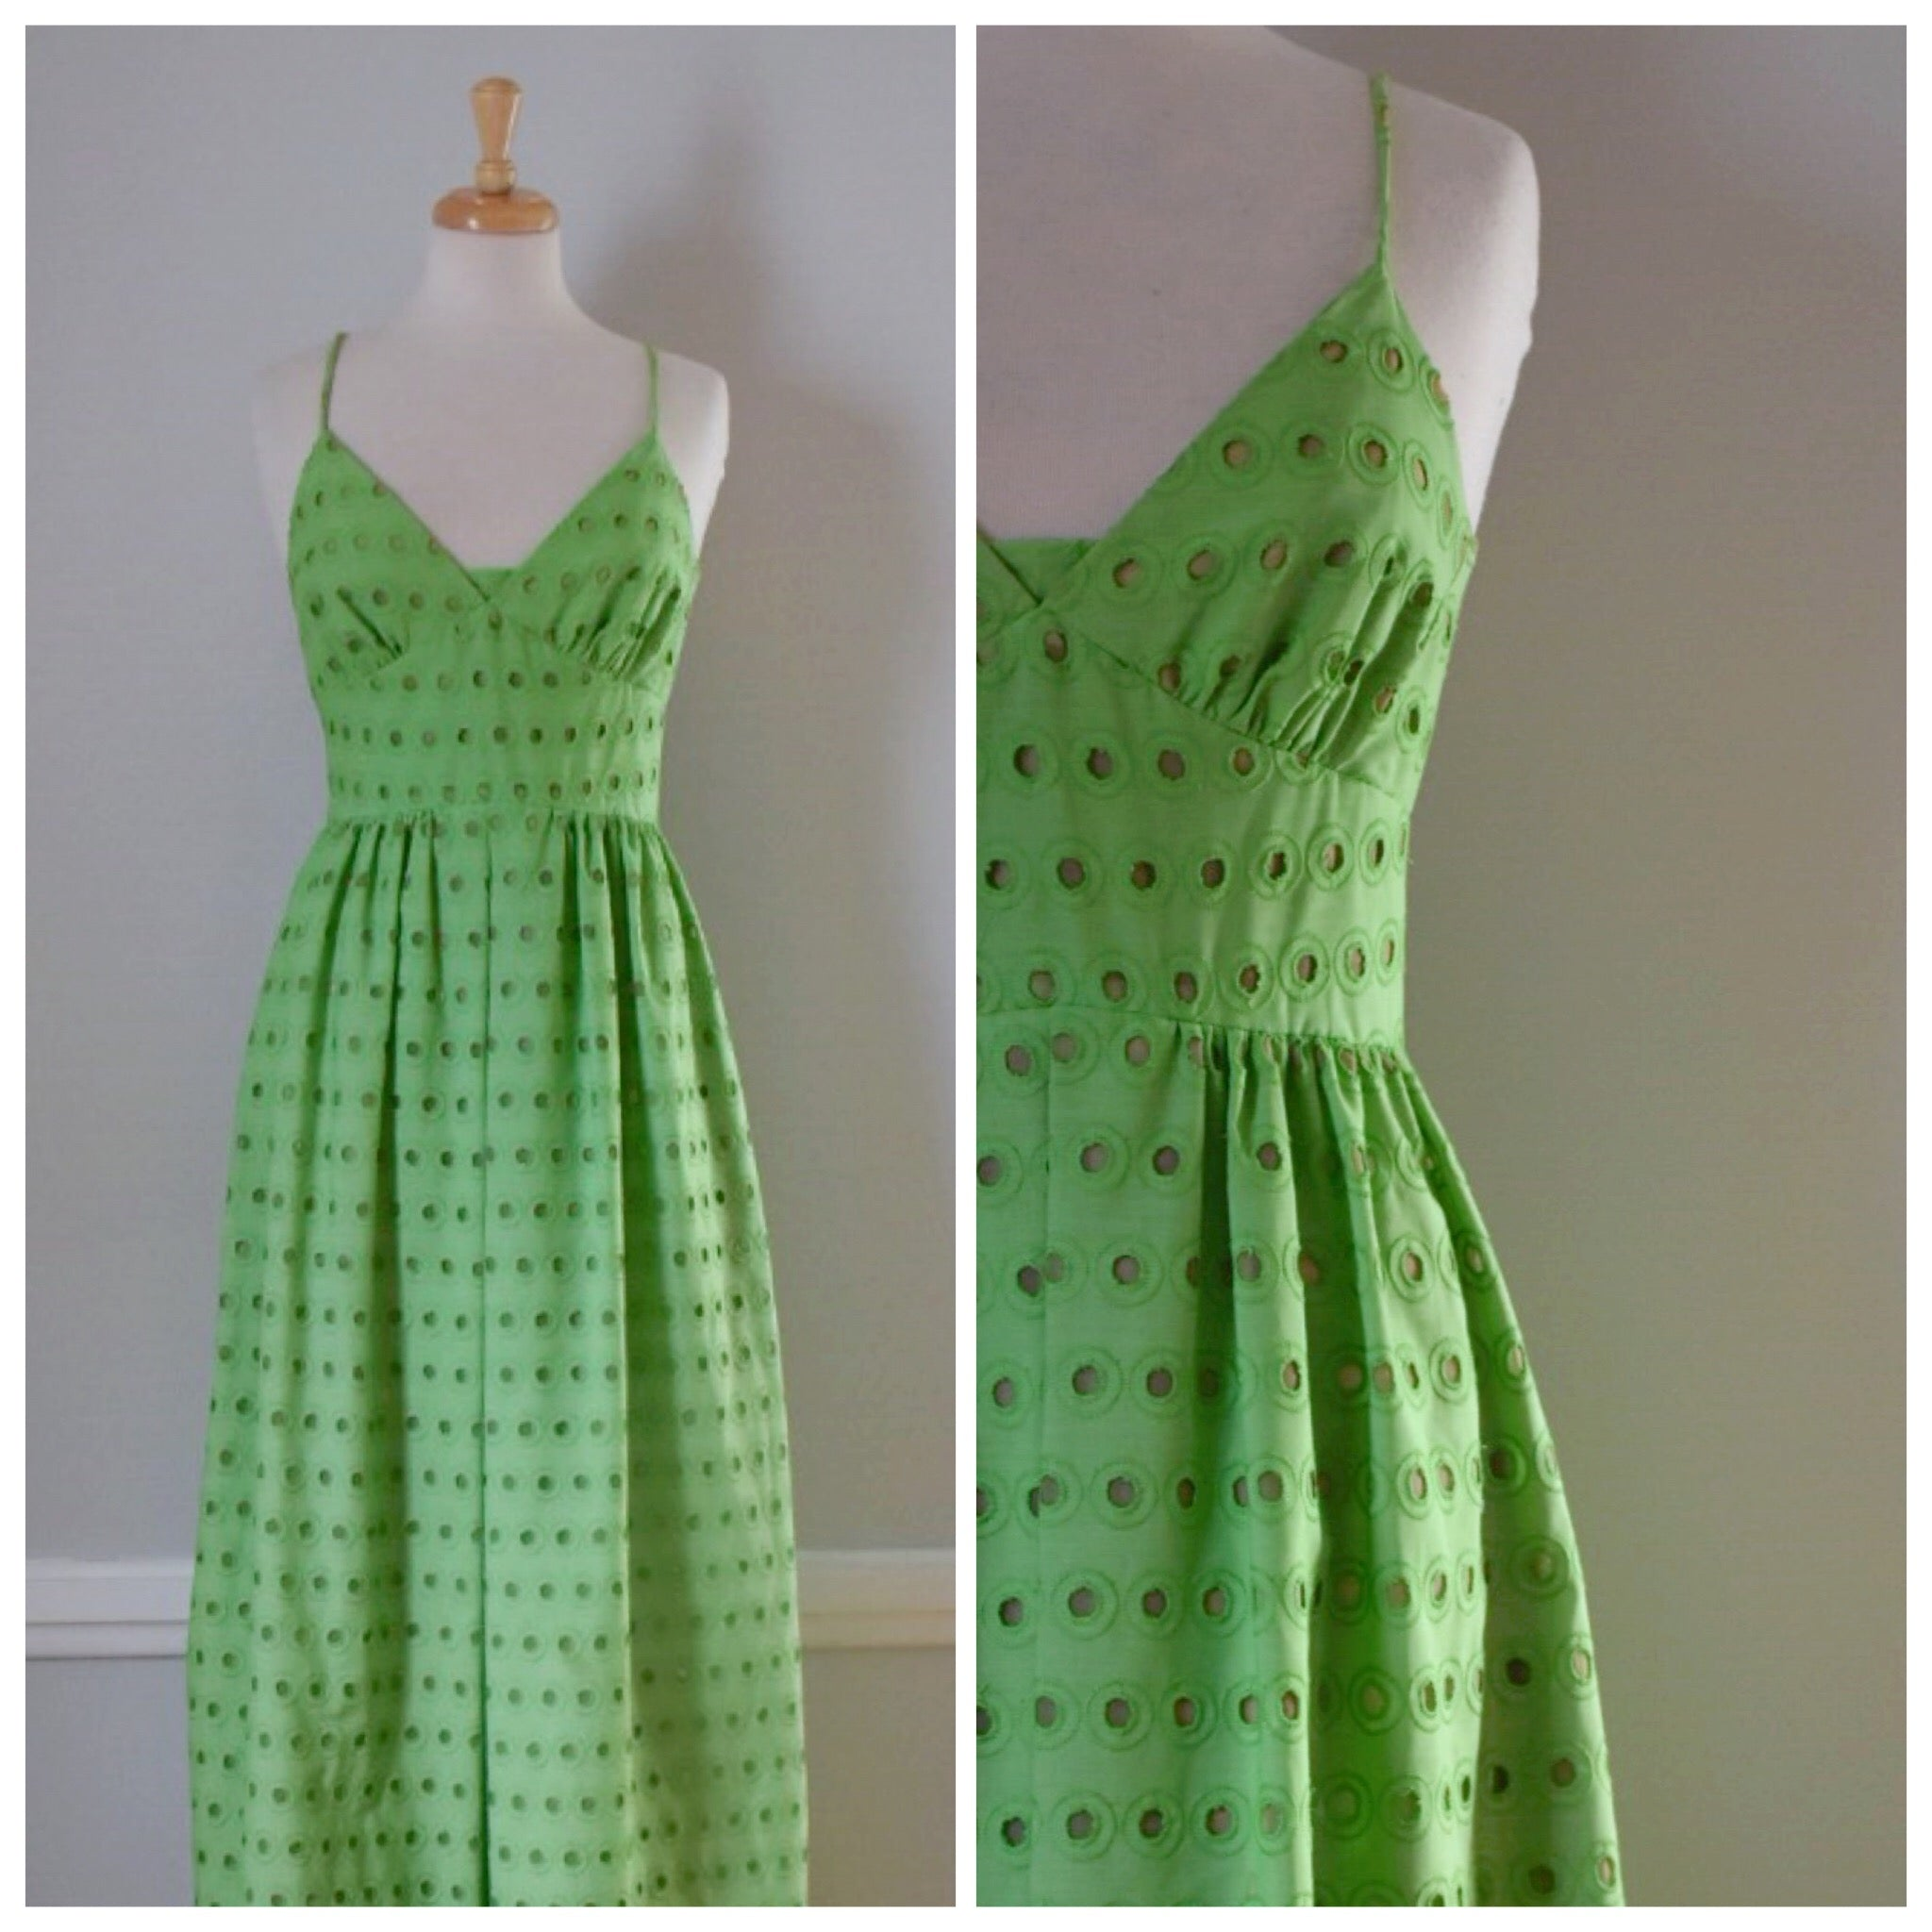 Vintage Eyelet Halter Dress from the 60s / 70s